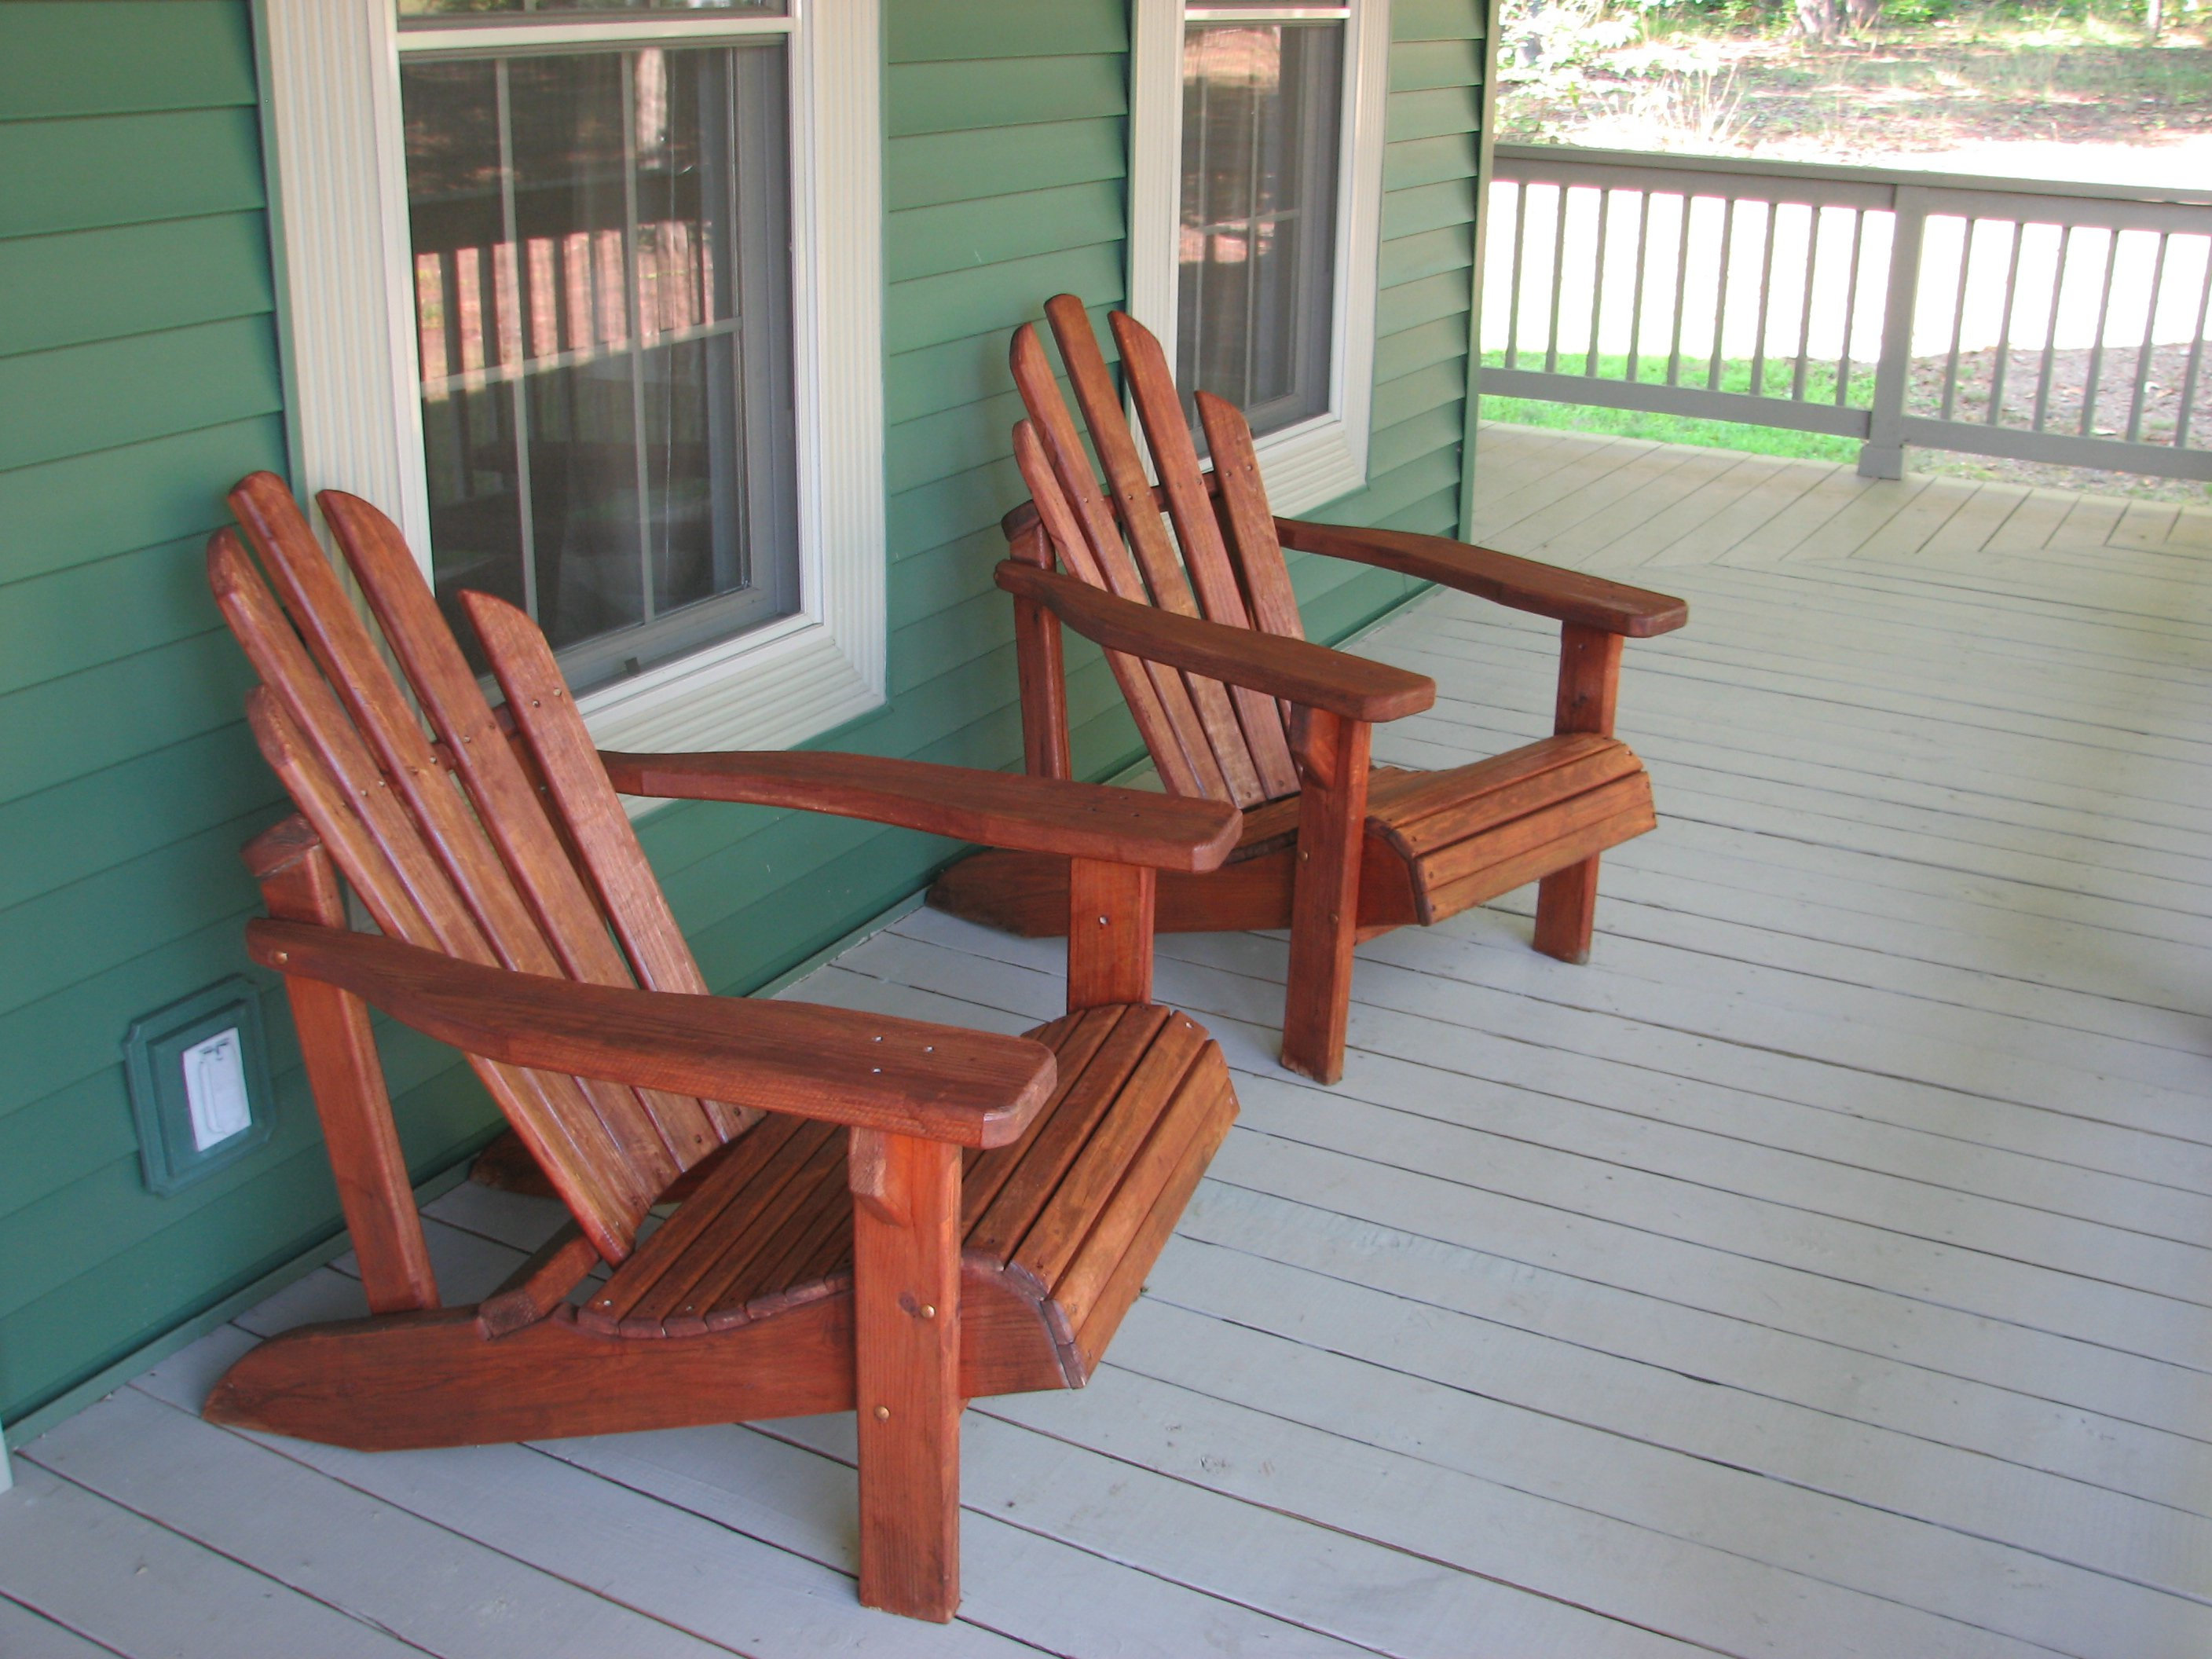 Re staining adirondack chairs living rich on lessliving rich on less - Furniture for front entryway ...